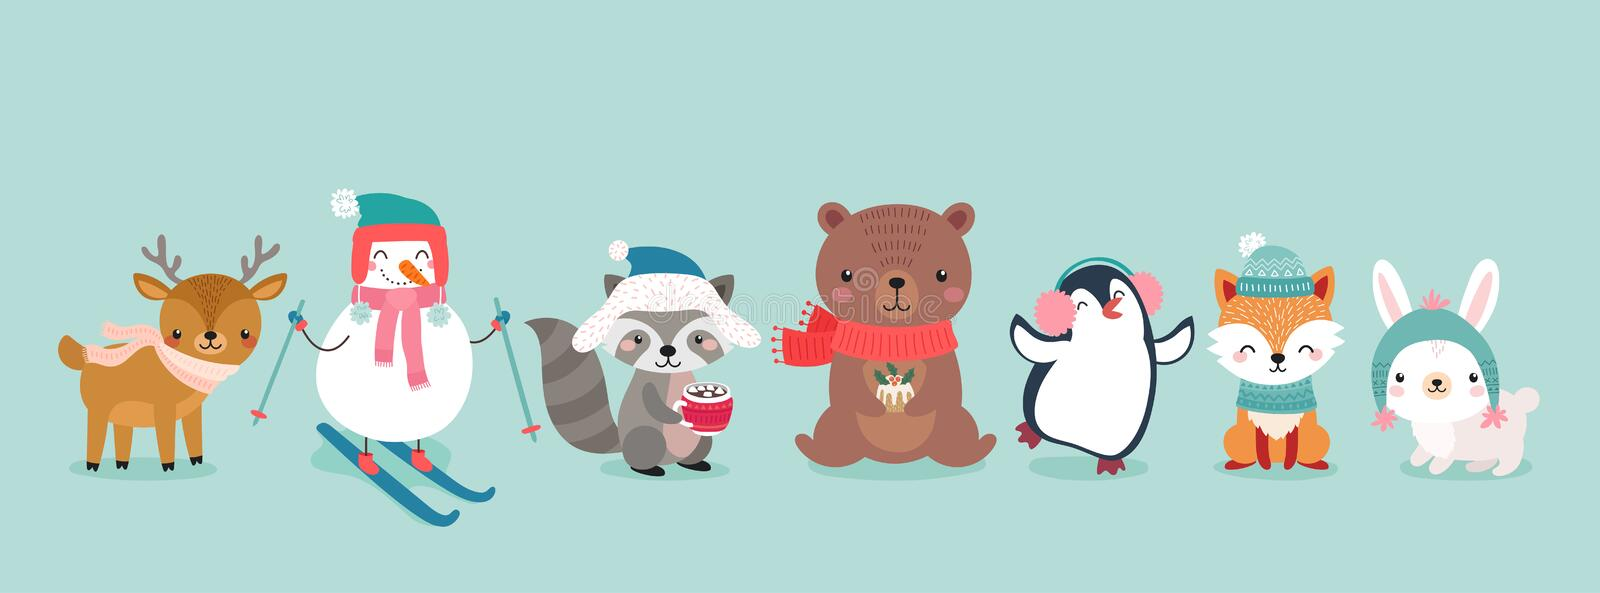 Christmas characters - animals, snowmen, Santa Claus stock illustration